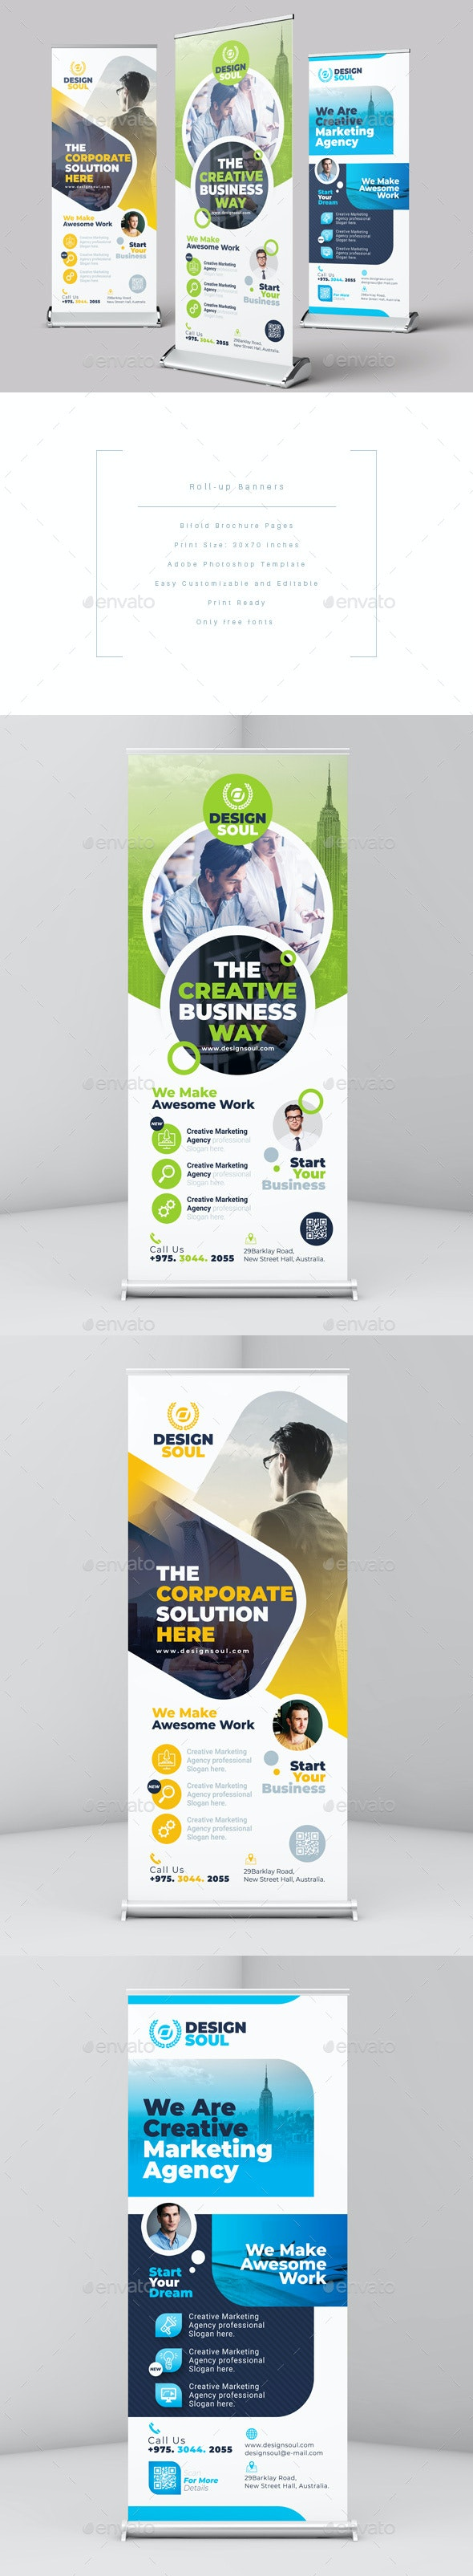 Roll Up Banners - Signage Print Templates